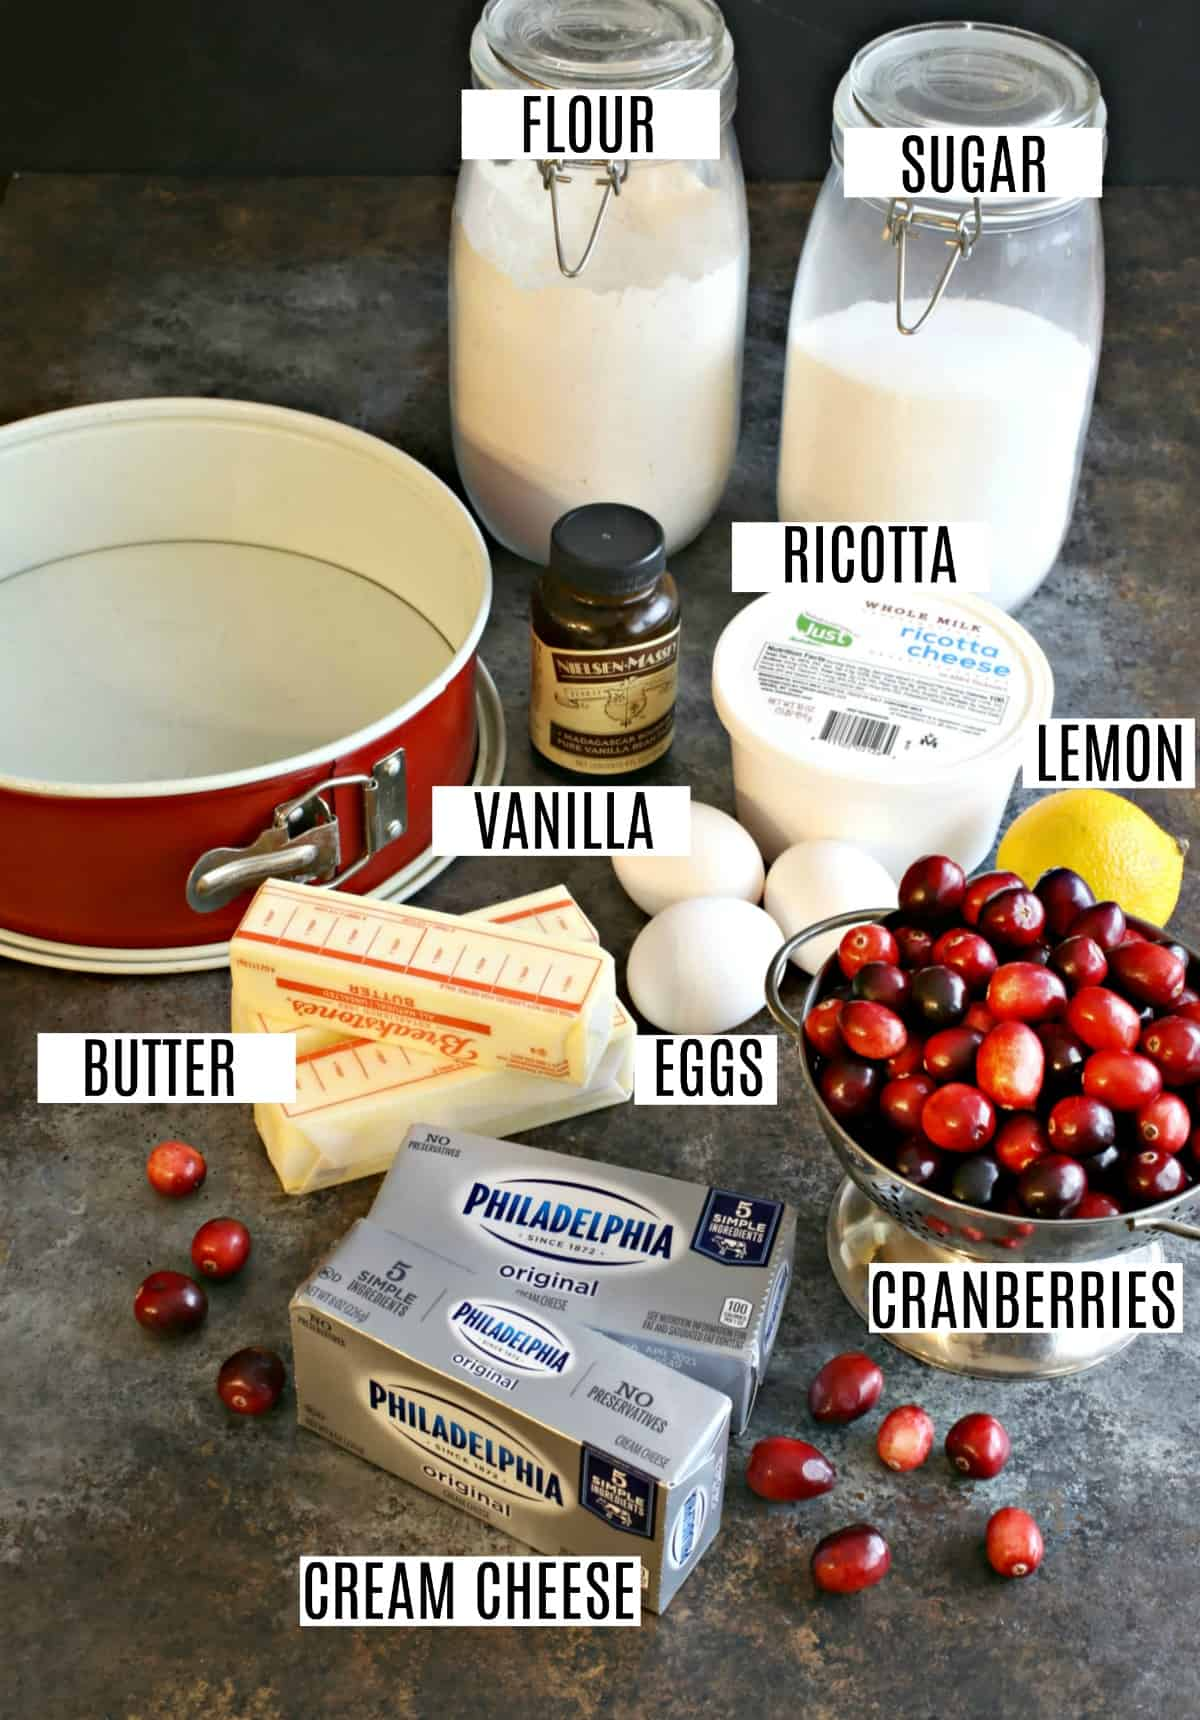 Ingredients needed to make cranberry cheesecake including ricotta and cream cheese.